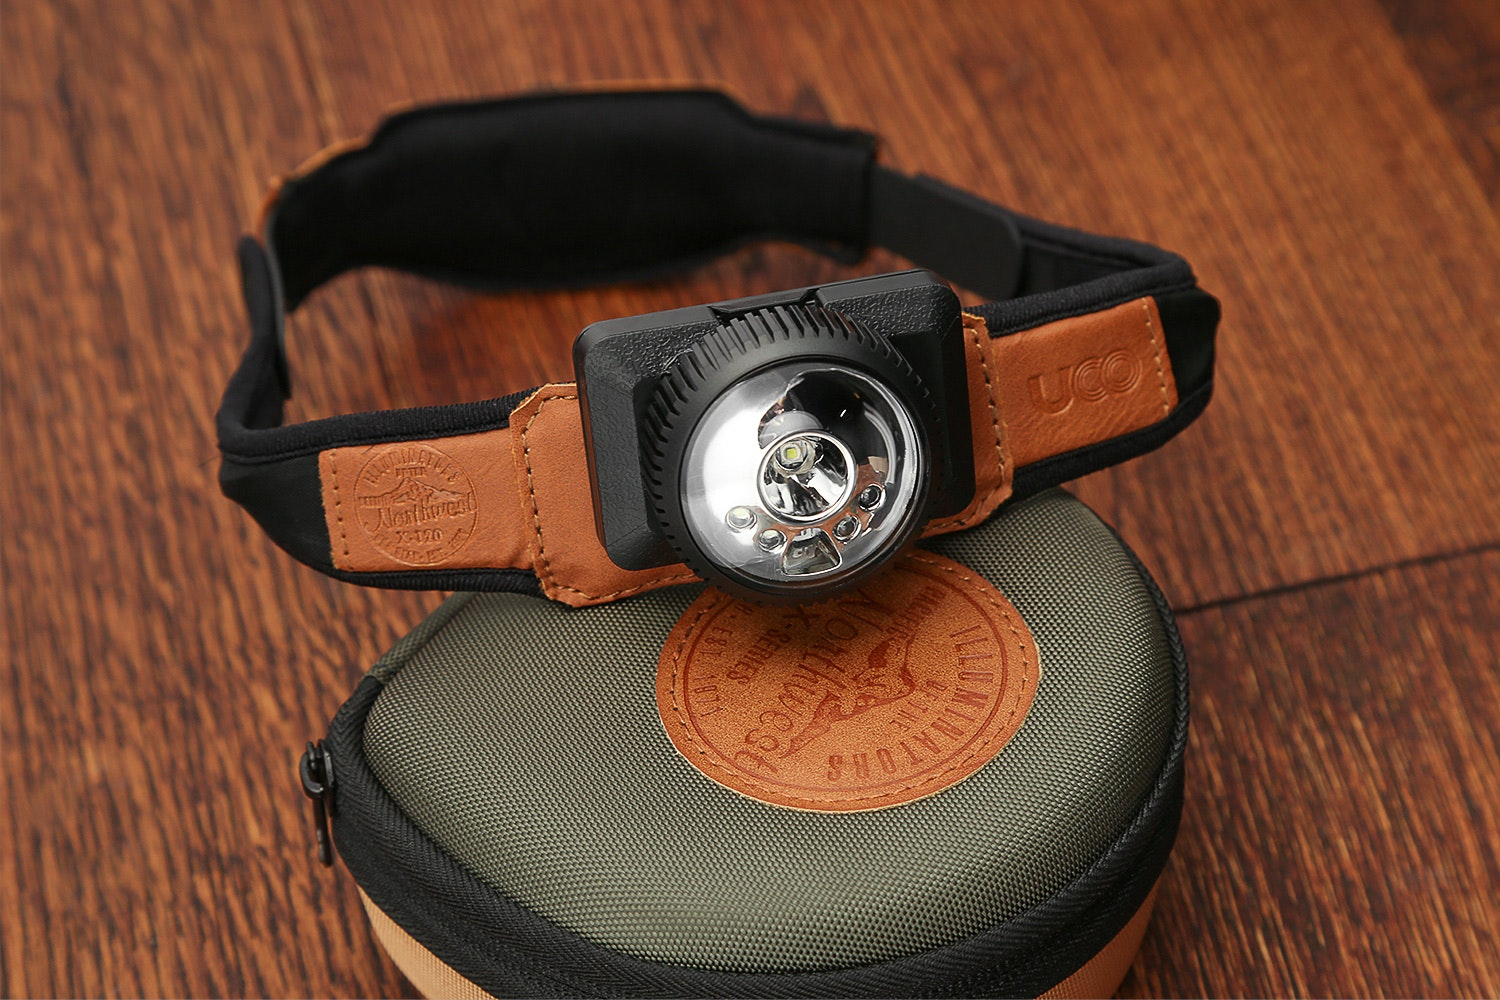 UCO X-120 X-ACT Fit Headlamp